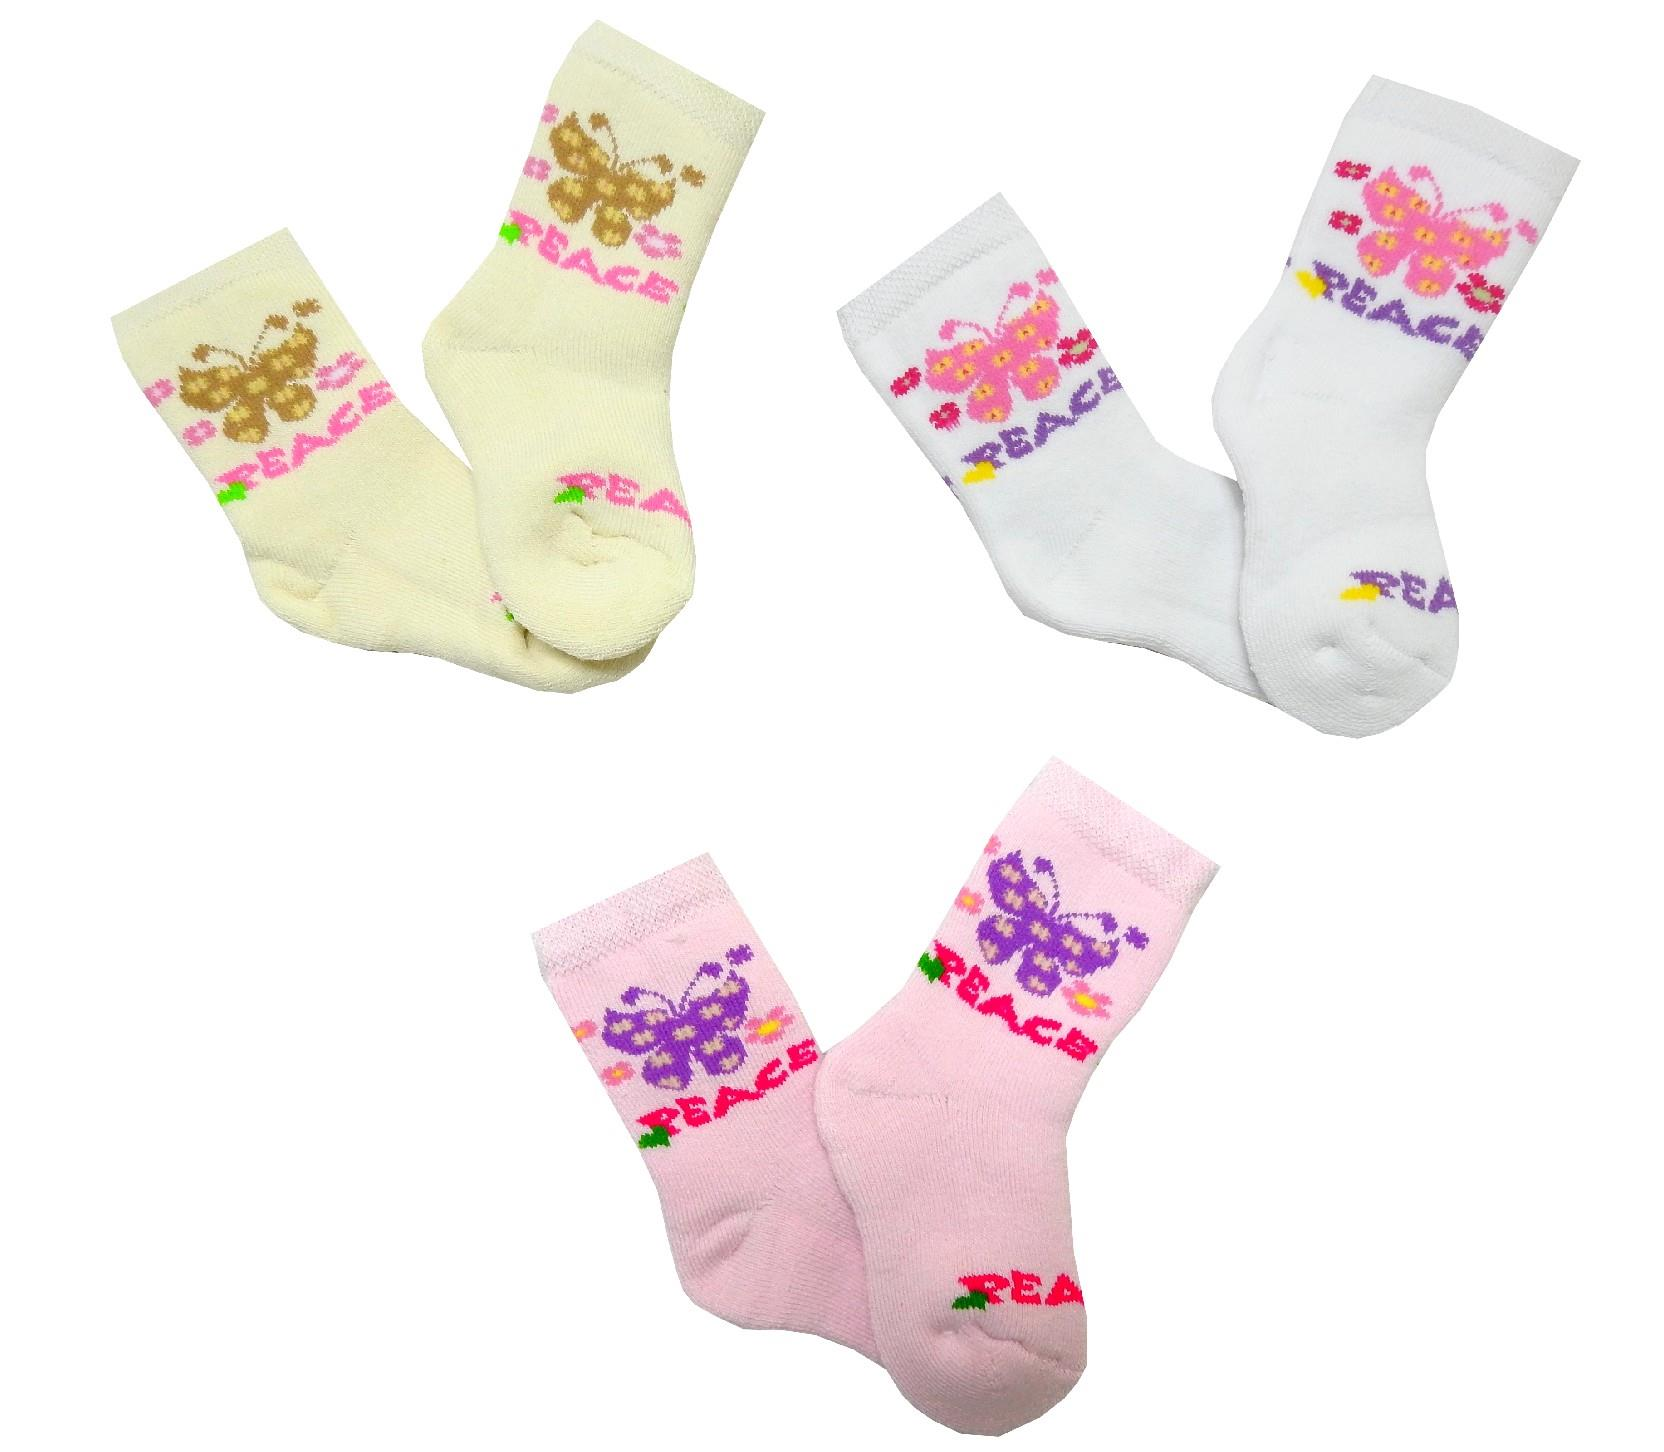 Wholesale butterfly sewed socks 12 pieces in package